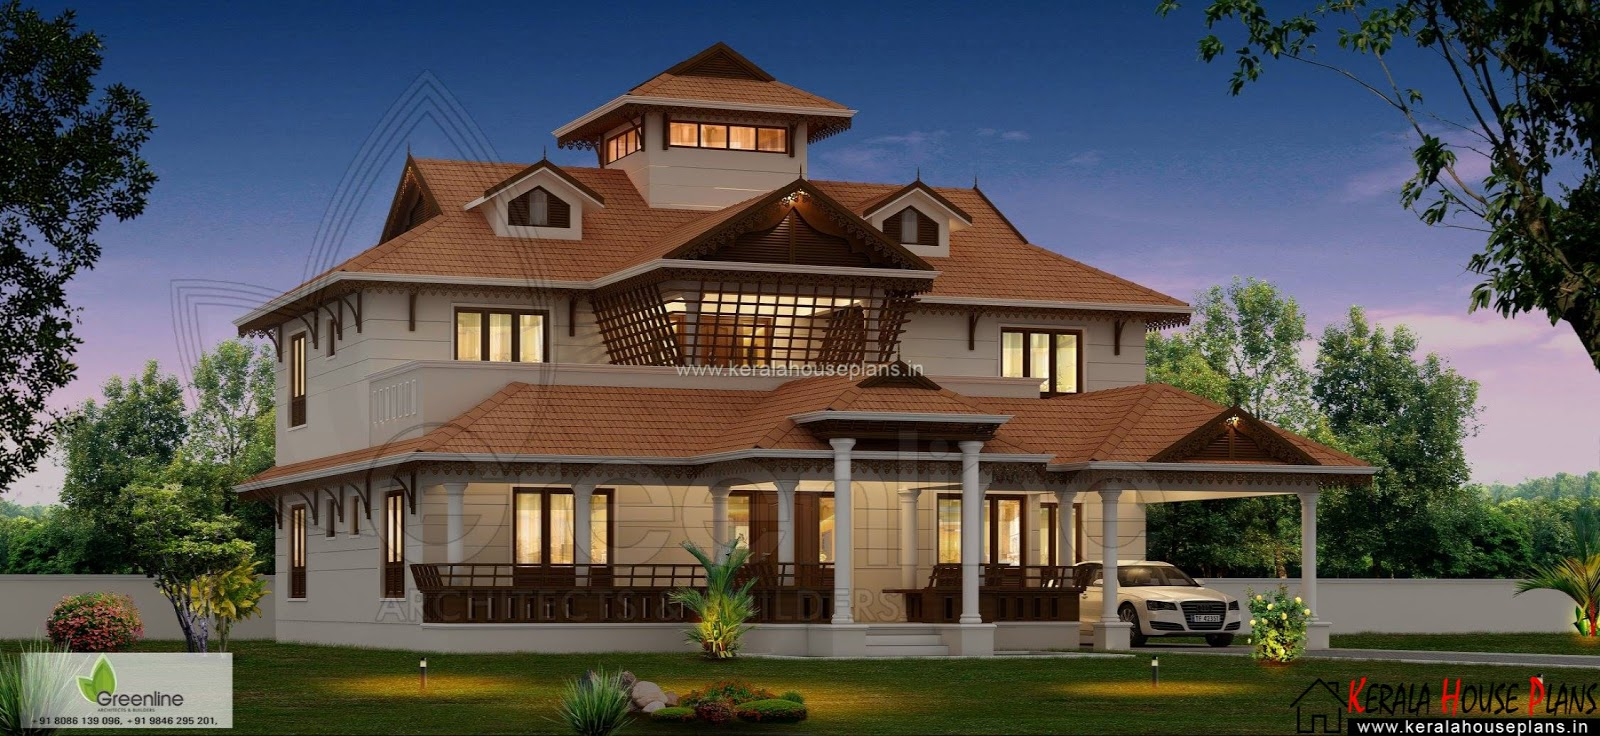 Kerala home design with courtyard